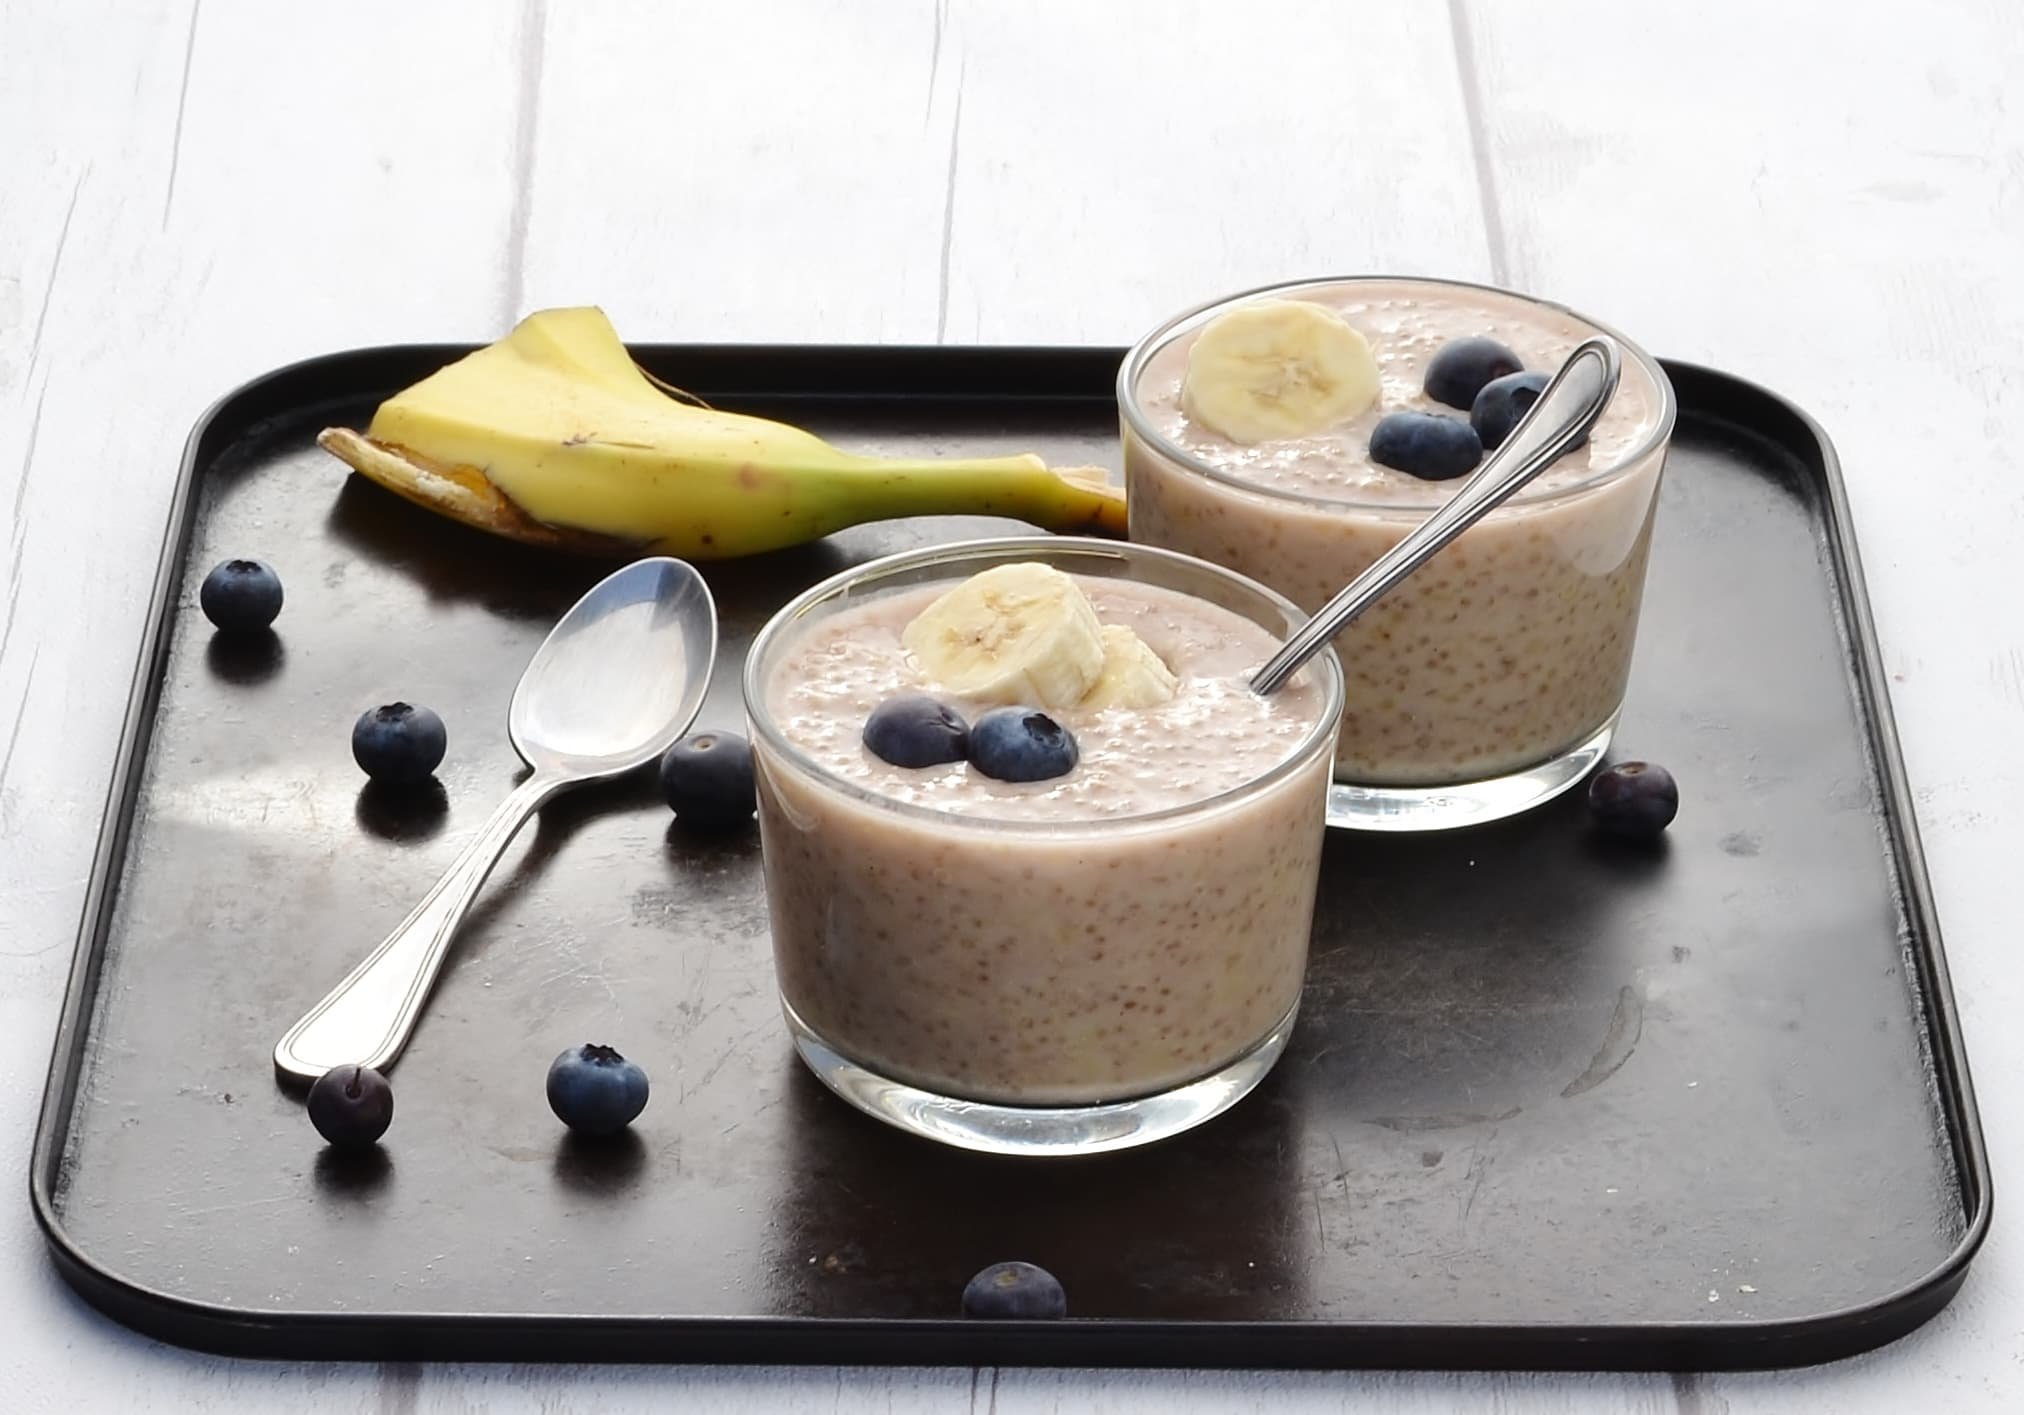 Side view of overnight quinoa with banana slices and blueberries in 2 cups with spoon, another spoon, blueberries and banana peel on dark table.